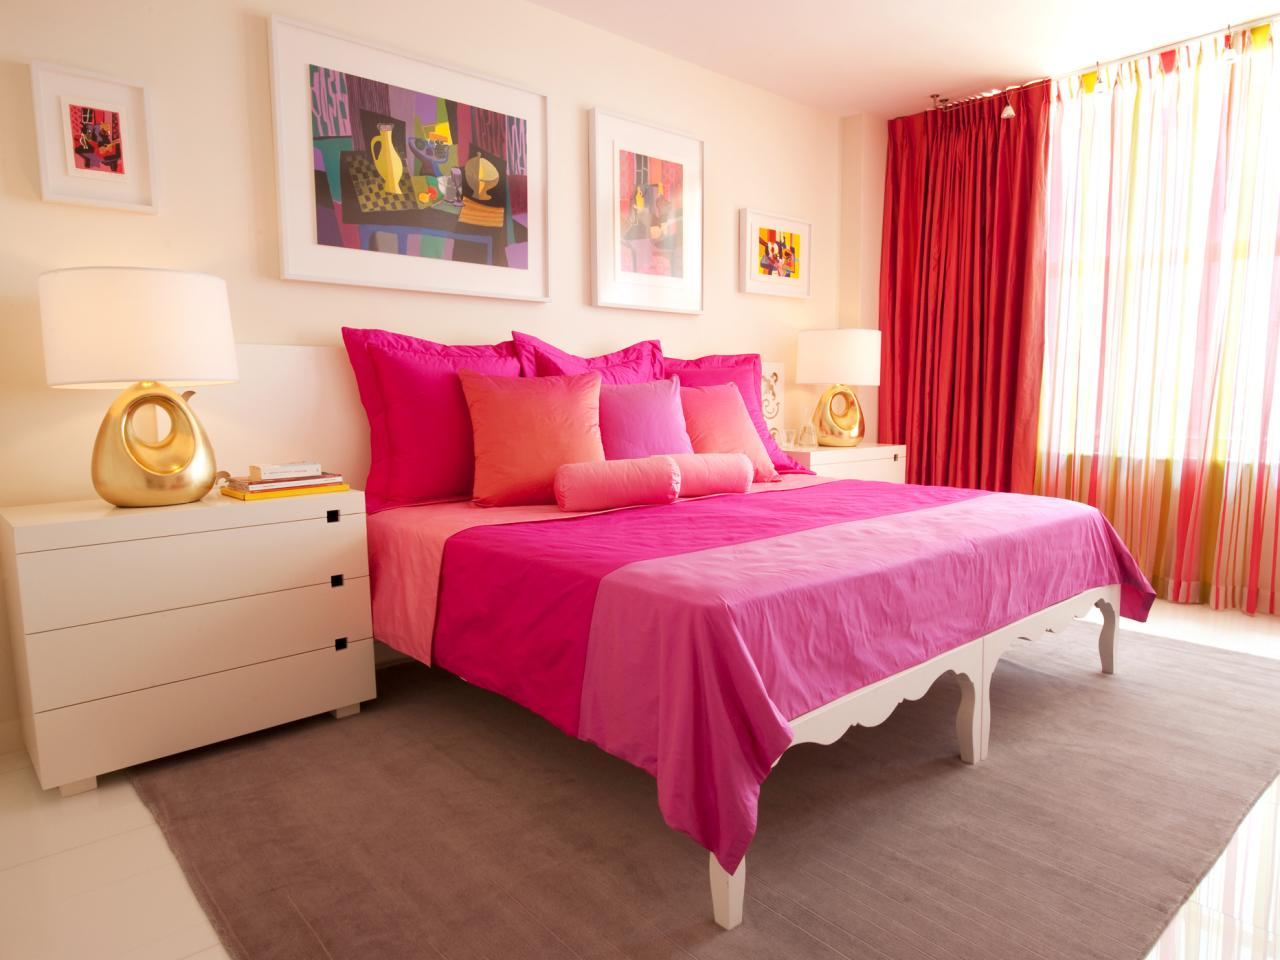 The most beautiful experience of living in a Pink bedroom